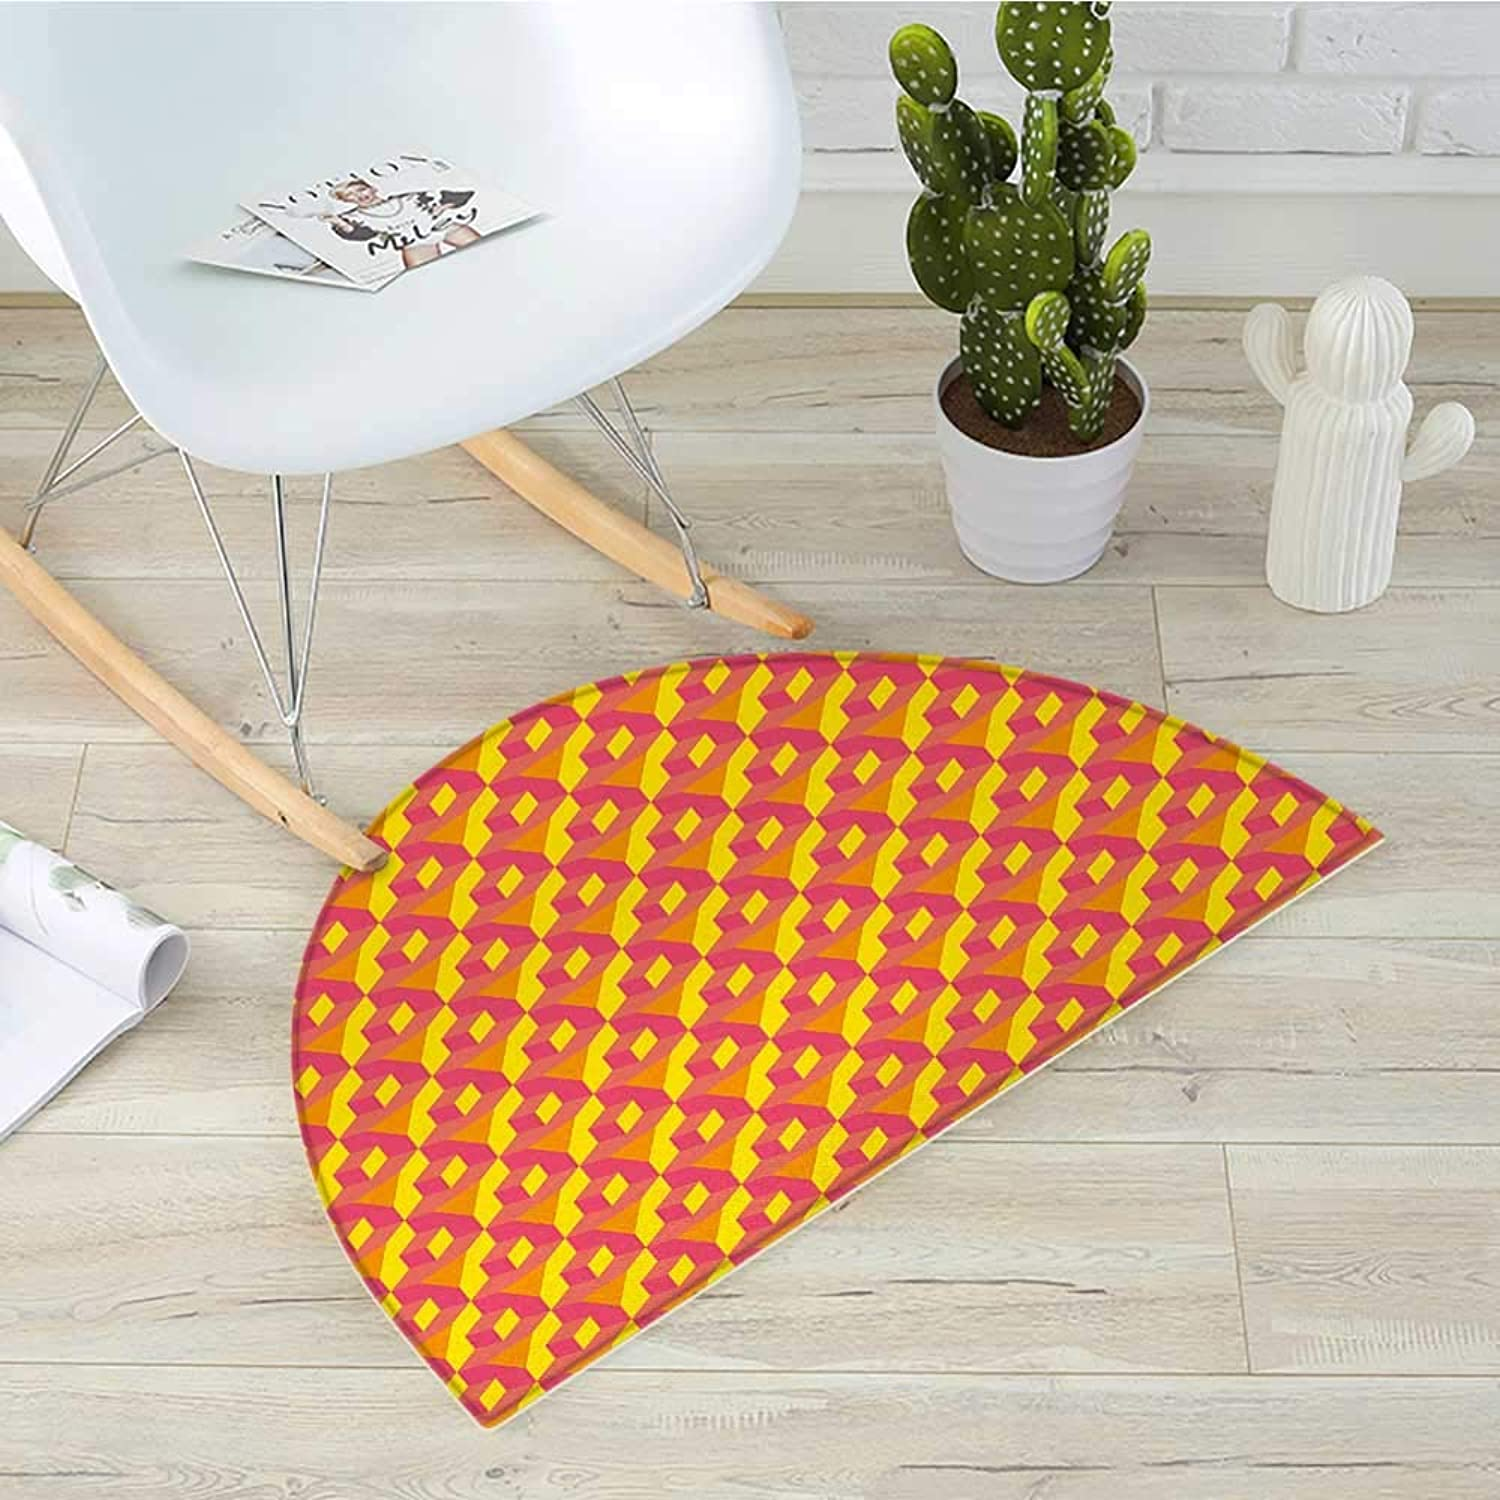 Abstract Half Round Door mats Geometric Dimension Pattern with Cube Prisms Hipster Fashion Graphic Bathroom Mat H 31.5  xD 47.2  Earth Yellow Hot Pink